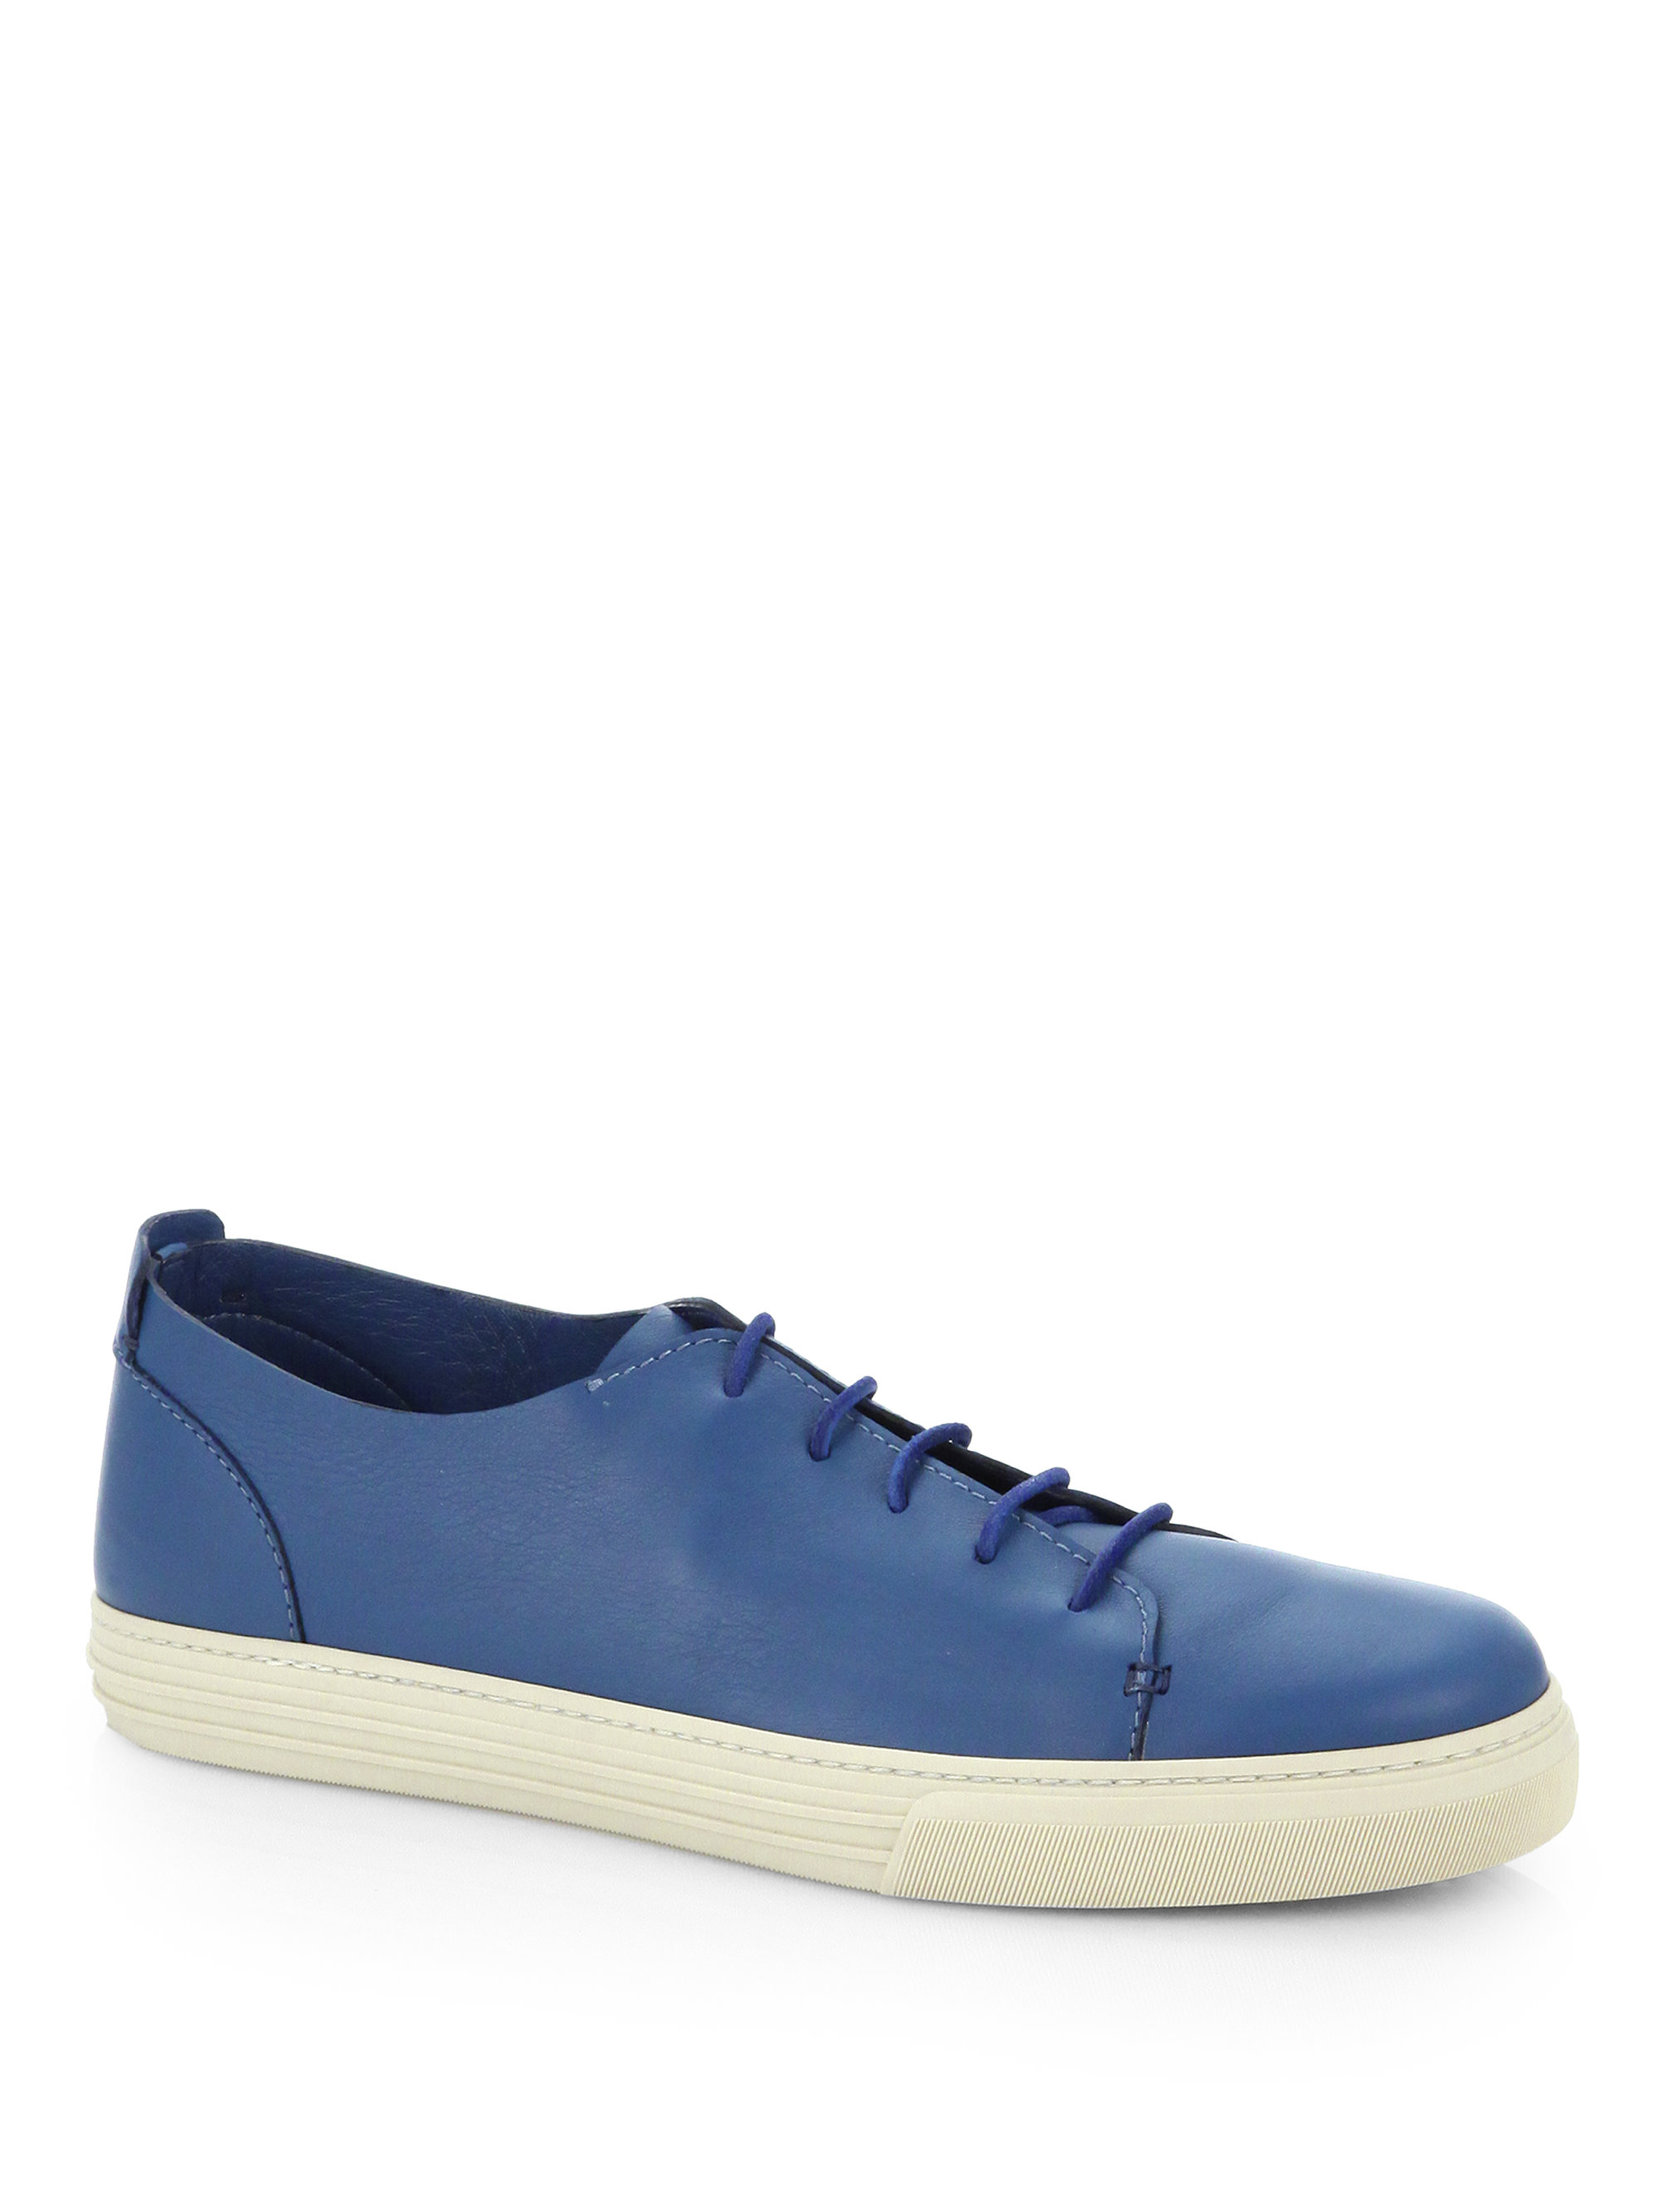 Lyst Gucci Leather Laceup Sneakers In Blue For Men